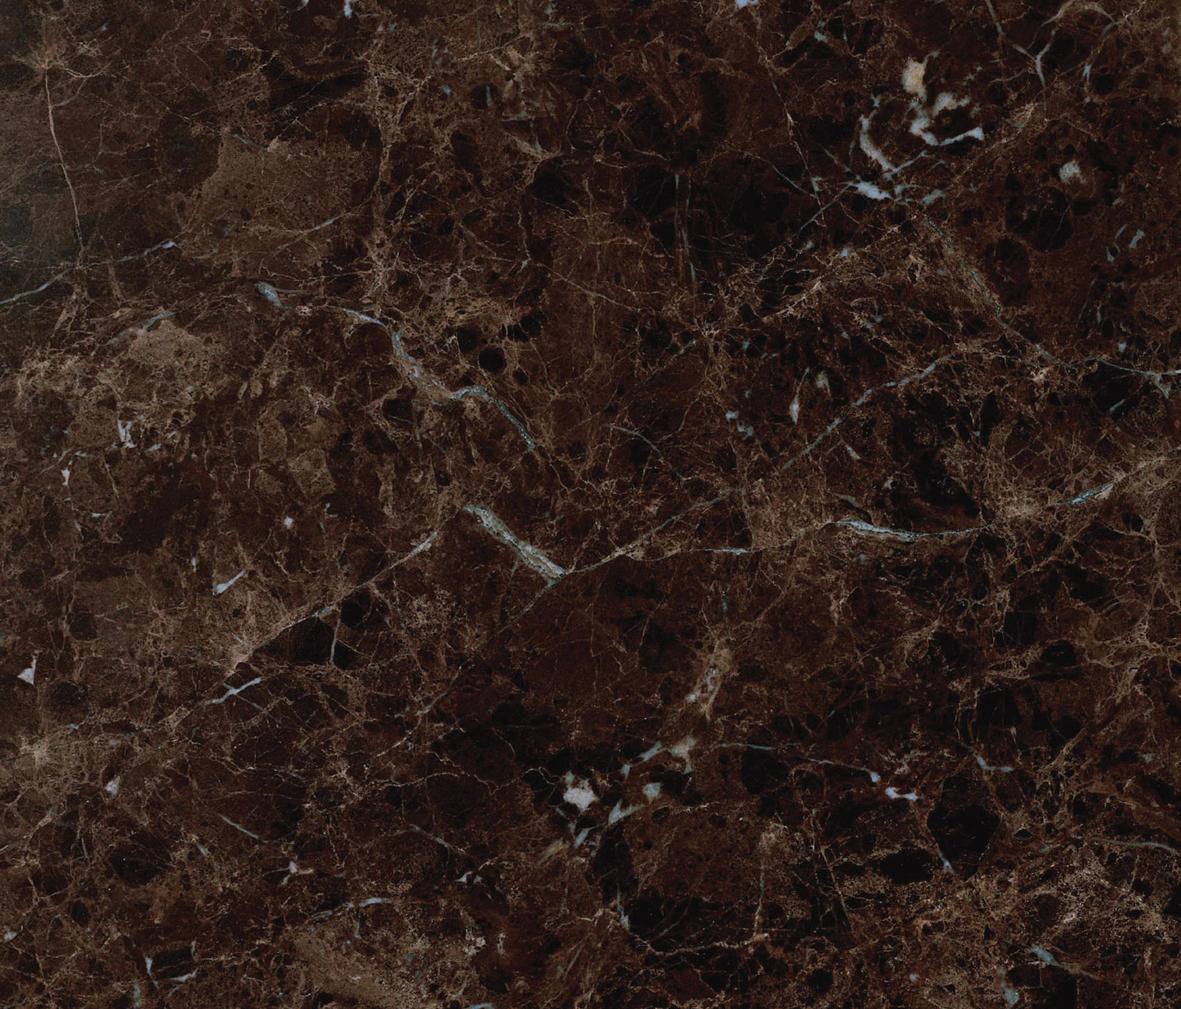 Scalea marmol marr n imperial natural stone panels from for Marmol veta marron